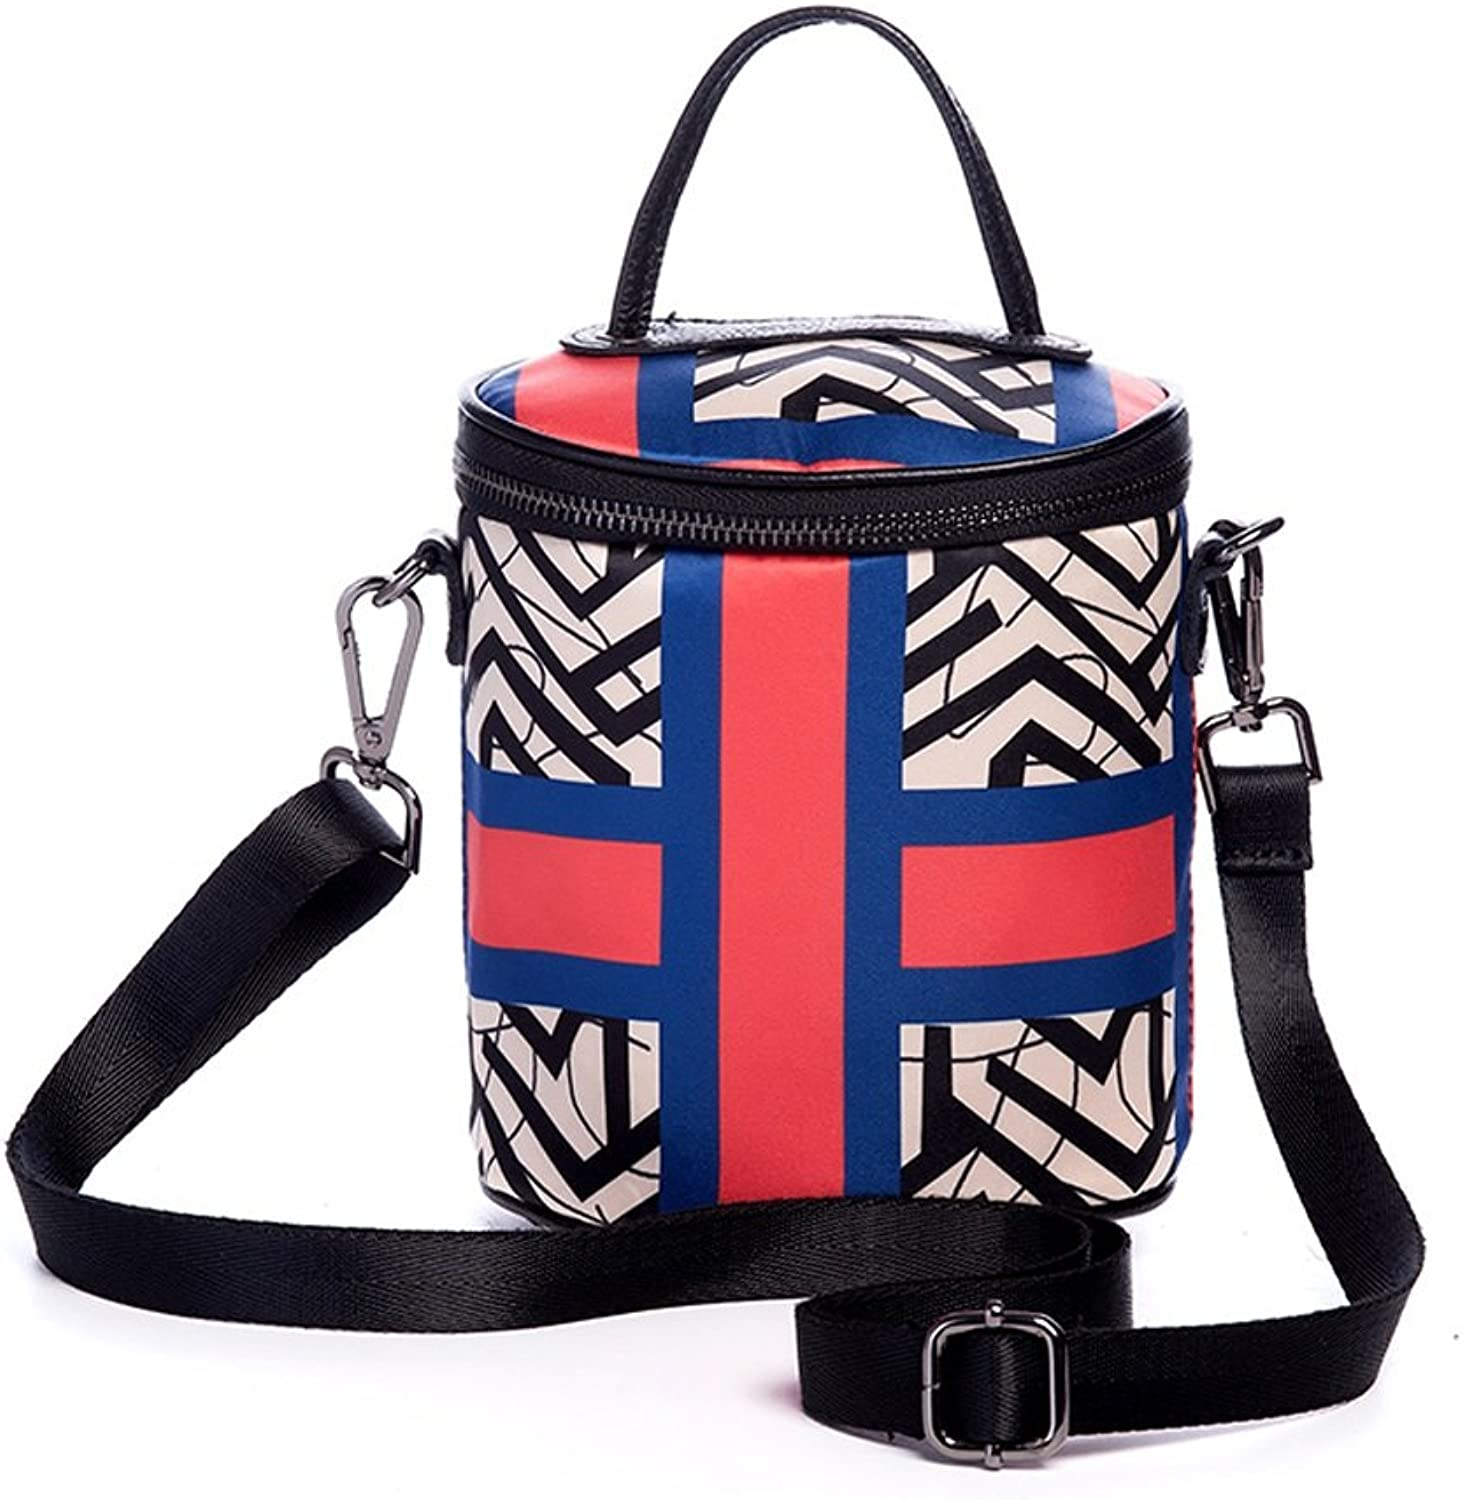 CJH Summer Small Bucket Mobile Phone Bag Ladies National Style greenical Section Oxford Cloth Barrel Art Bag